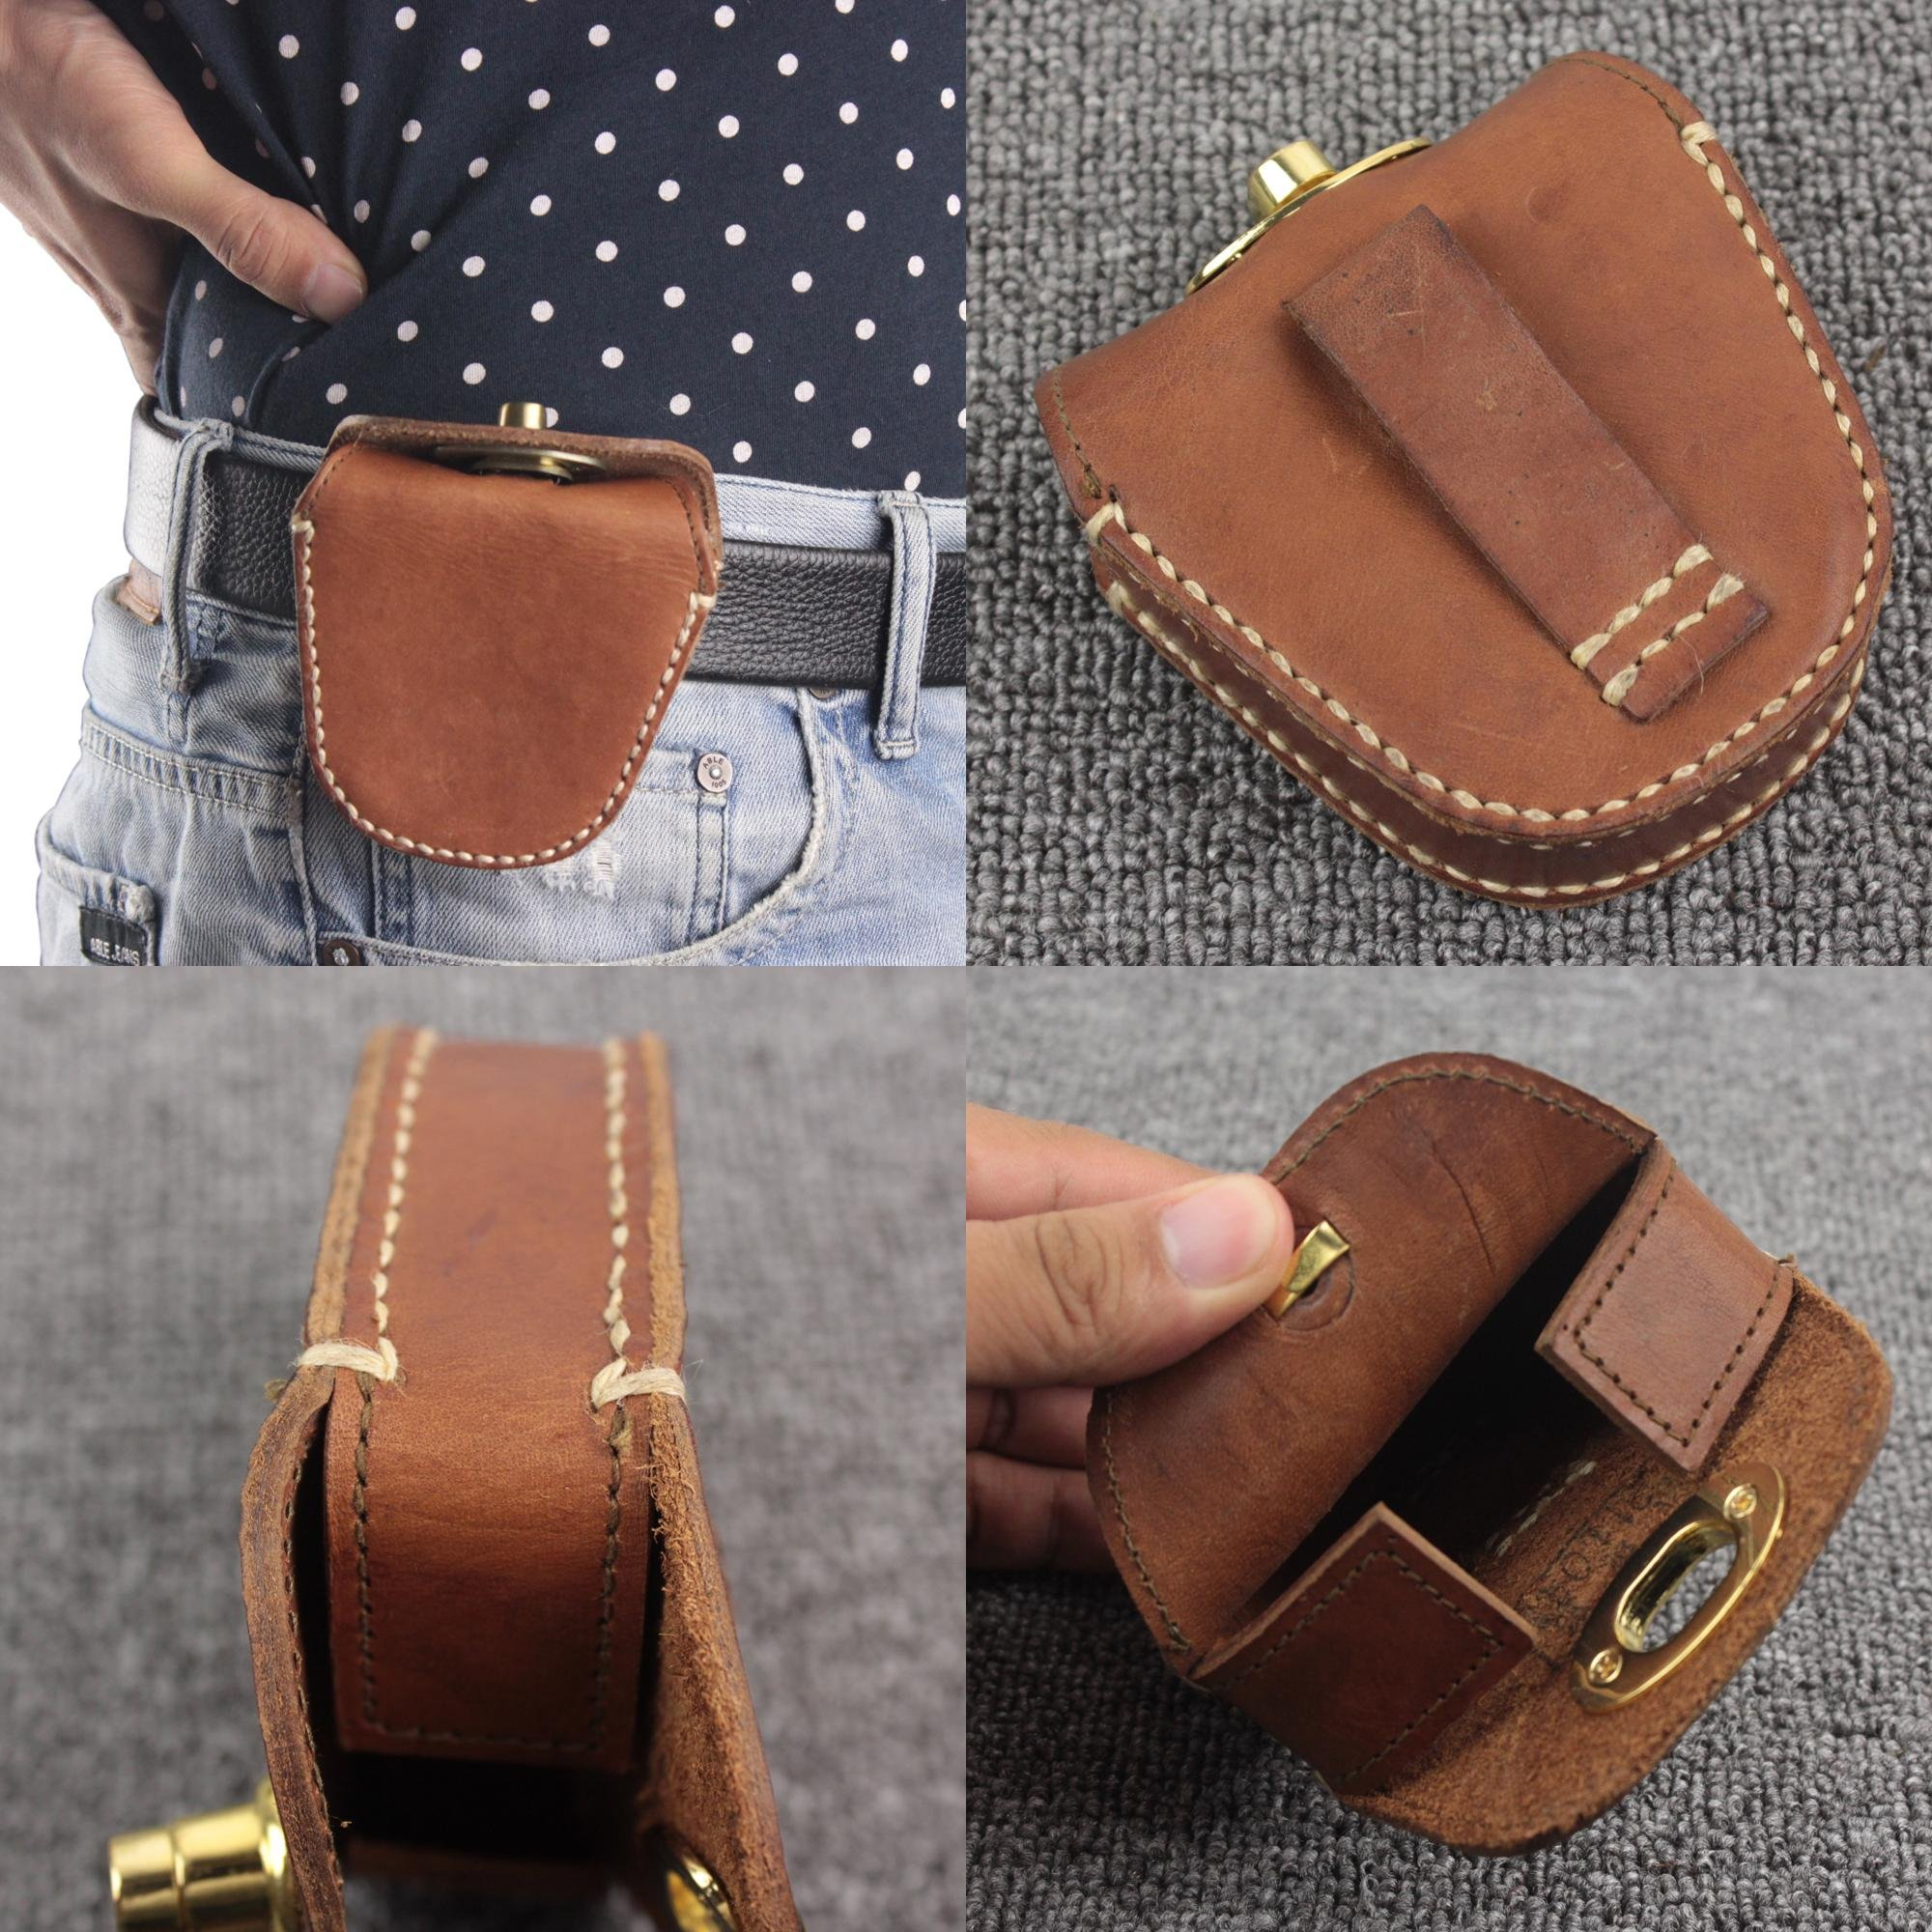 Thick Geninue Leather Handmade Pellets Ammo Storage Bag Pouch hunting outdoor by Unknown (Image #1)